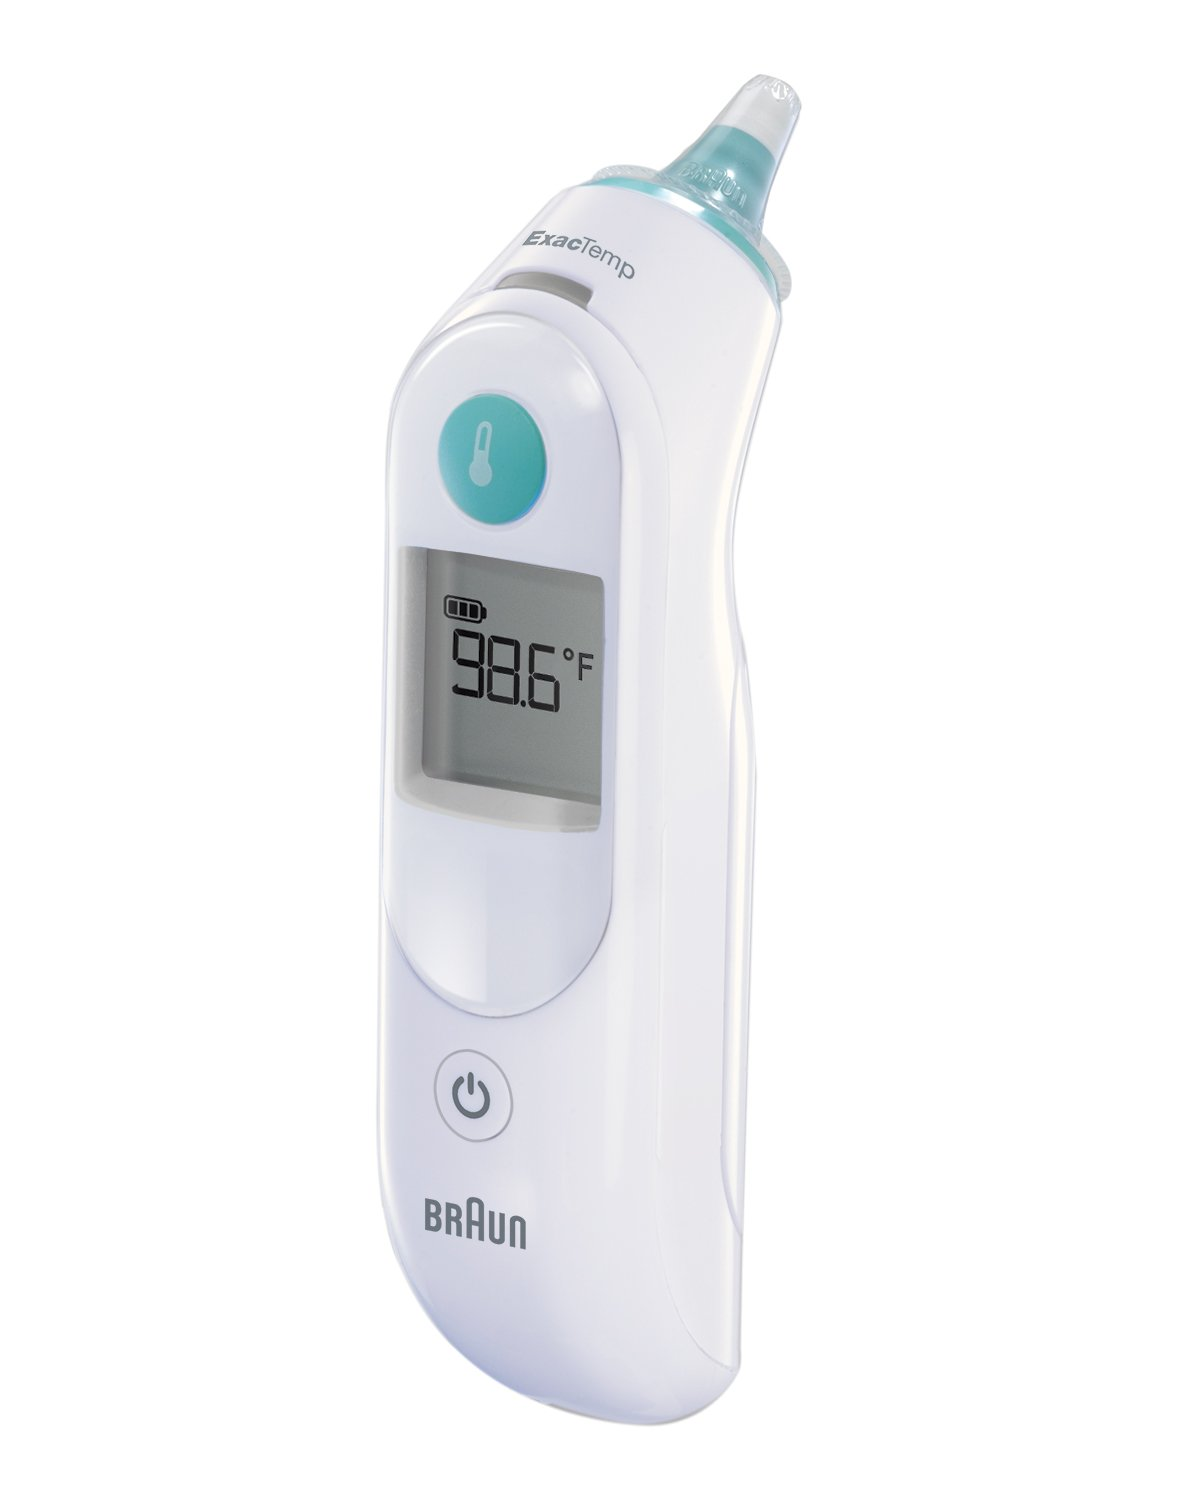 Braun Ear Thermometer